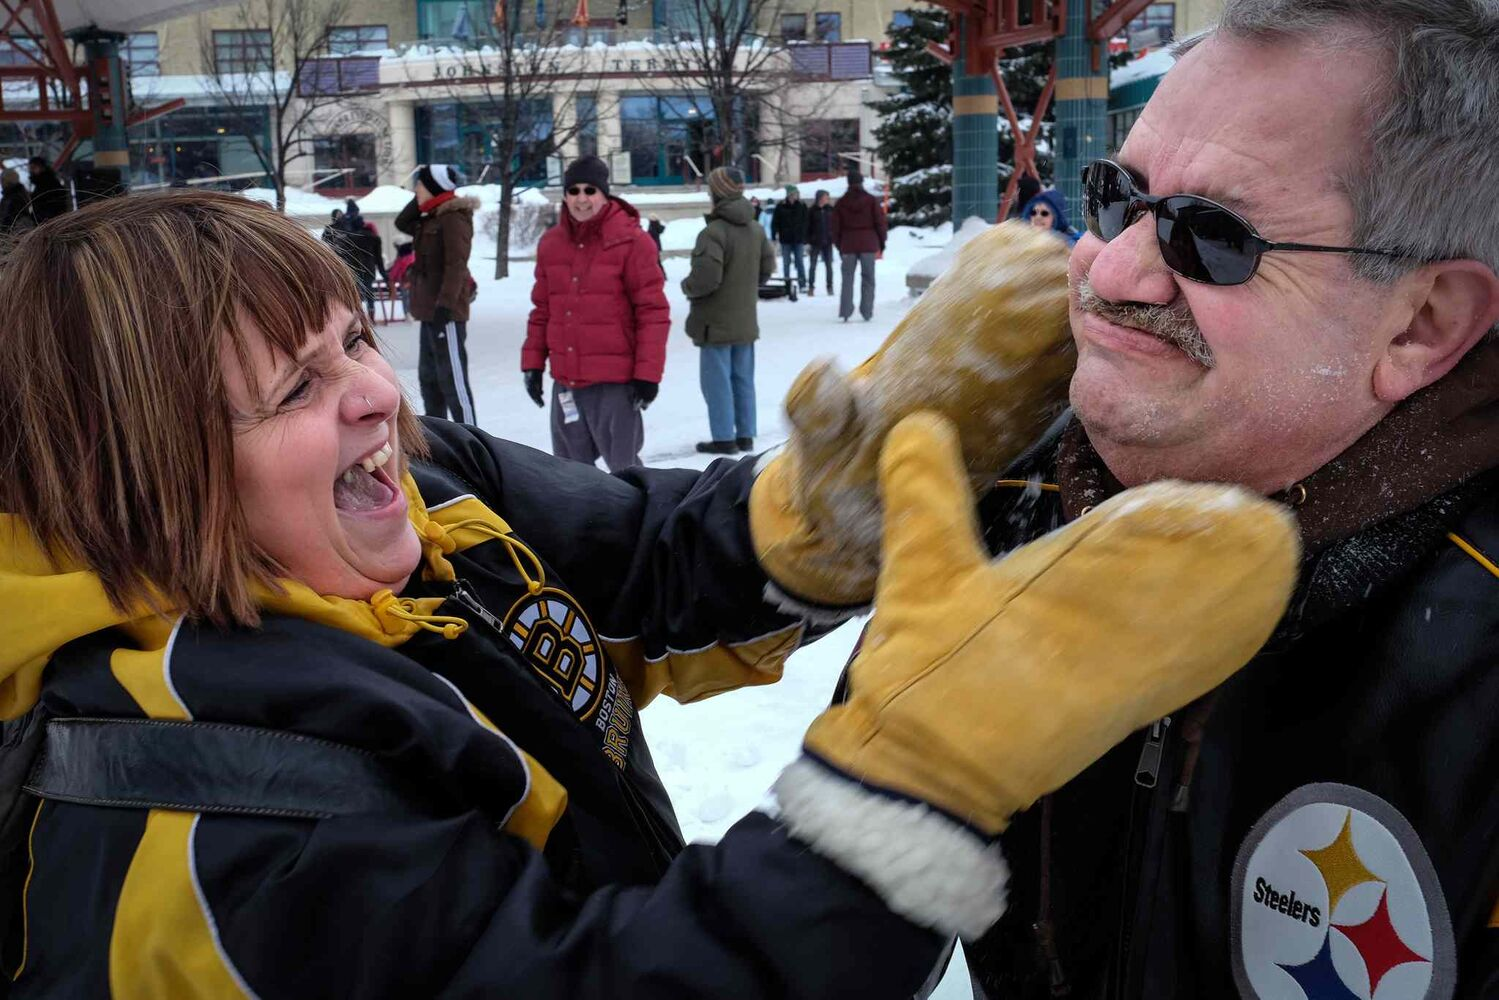 Cathy gives Tom a face full of snow after she slid down the hill of snow at The Forks. MIKE DEAL / WINNIPEG FREE PRESS